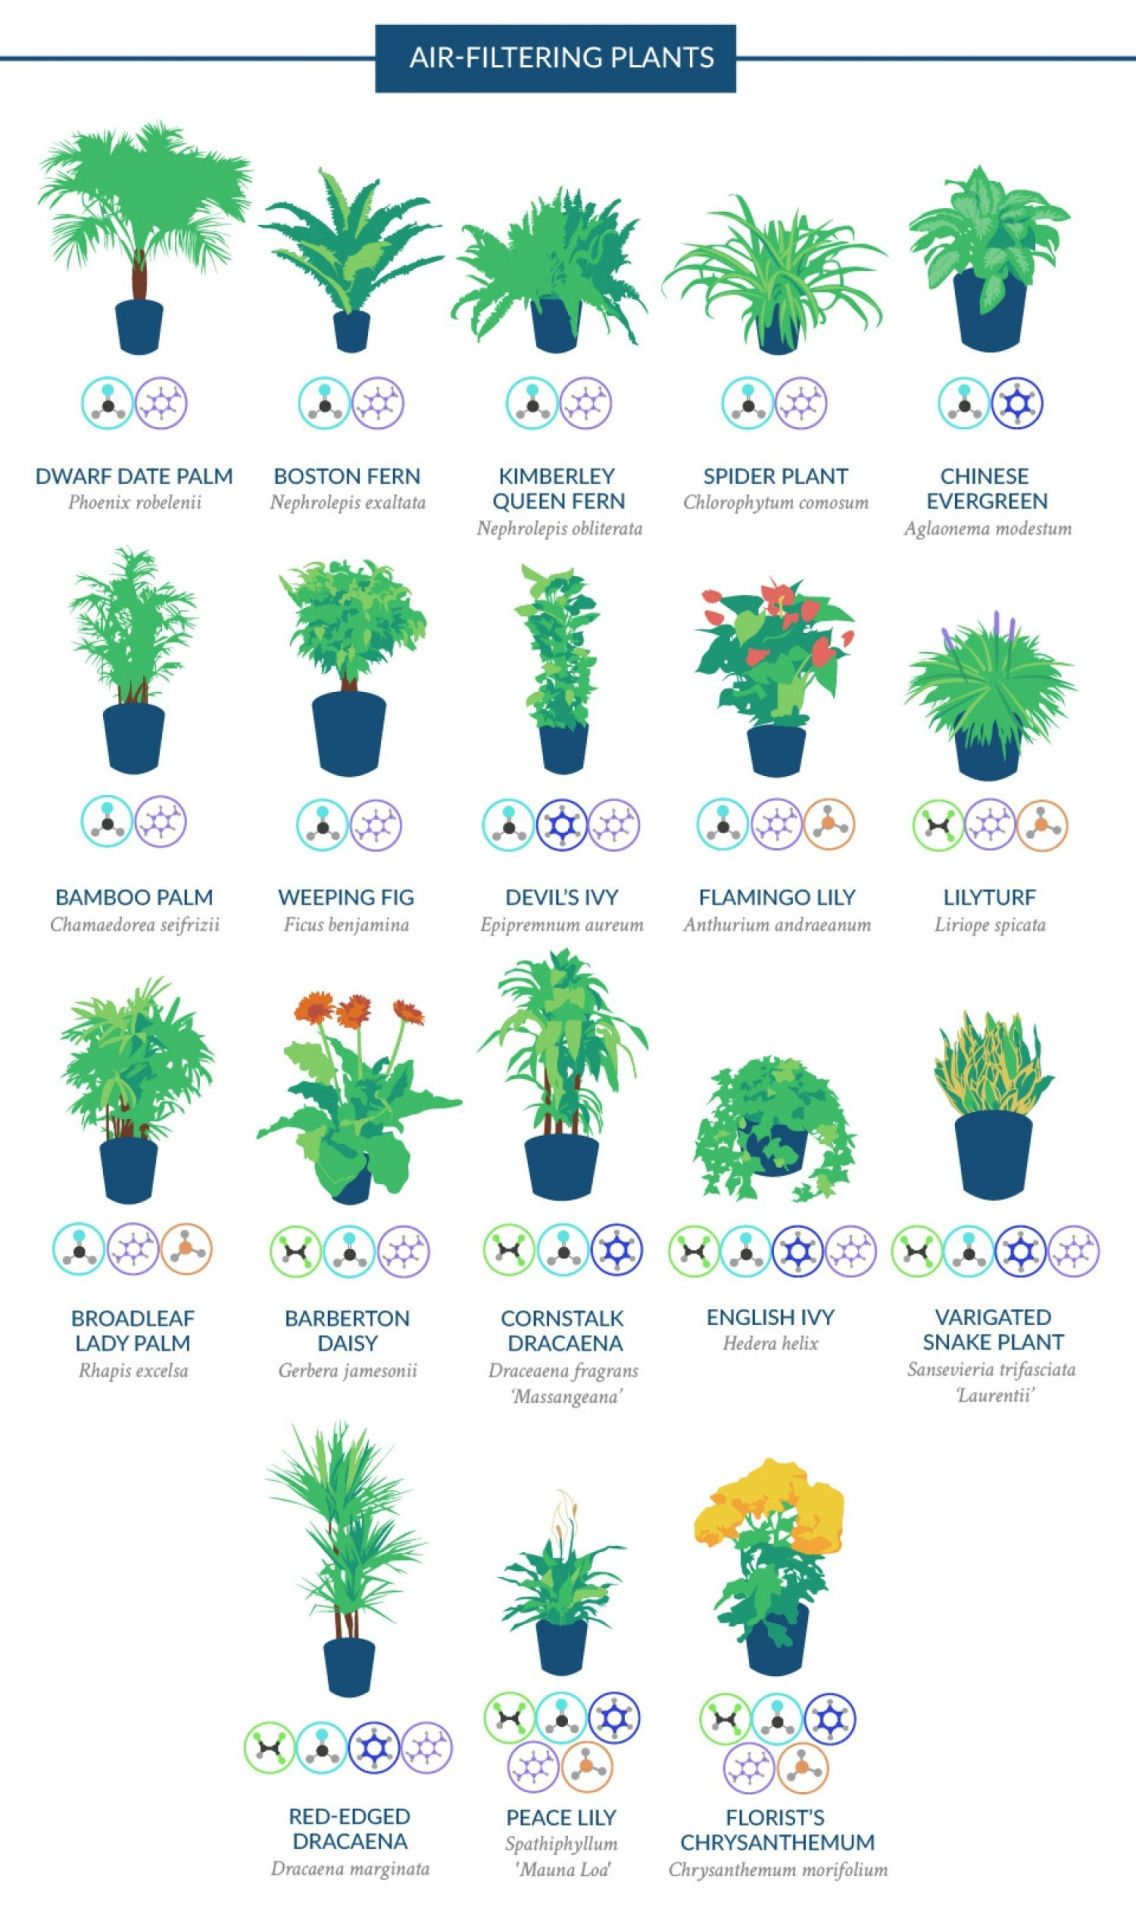 Kaca2903 The Best Air Purifying Houseplants According To